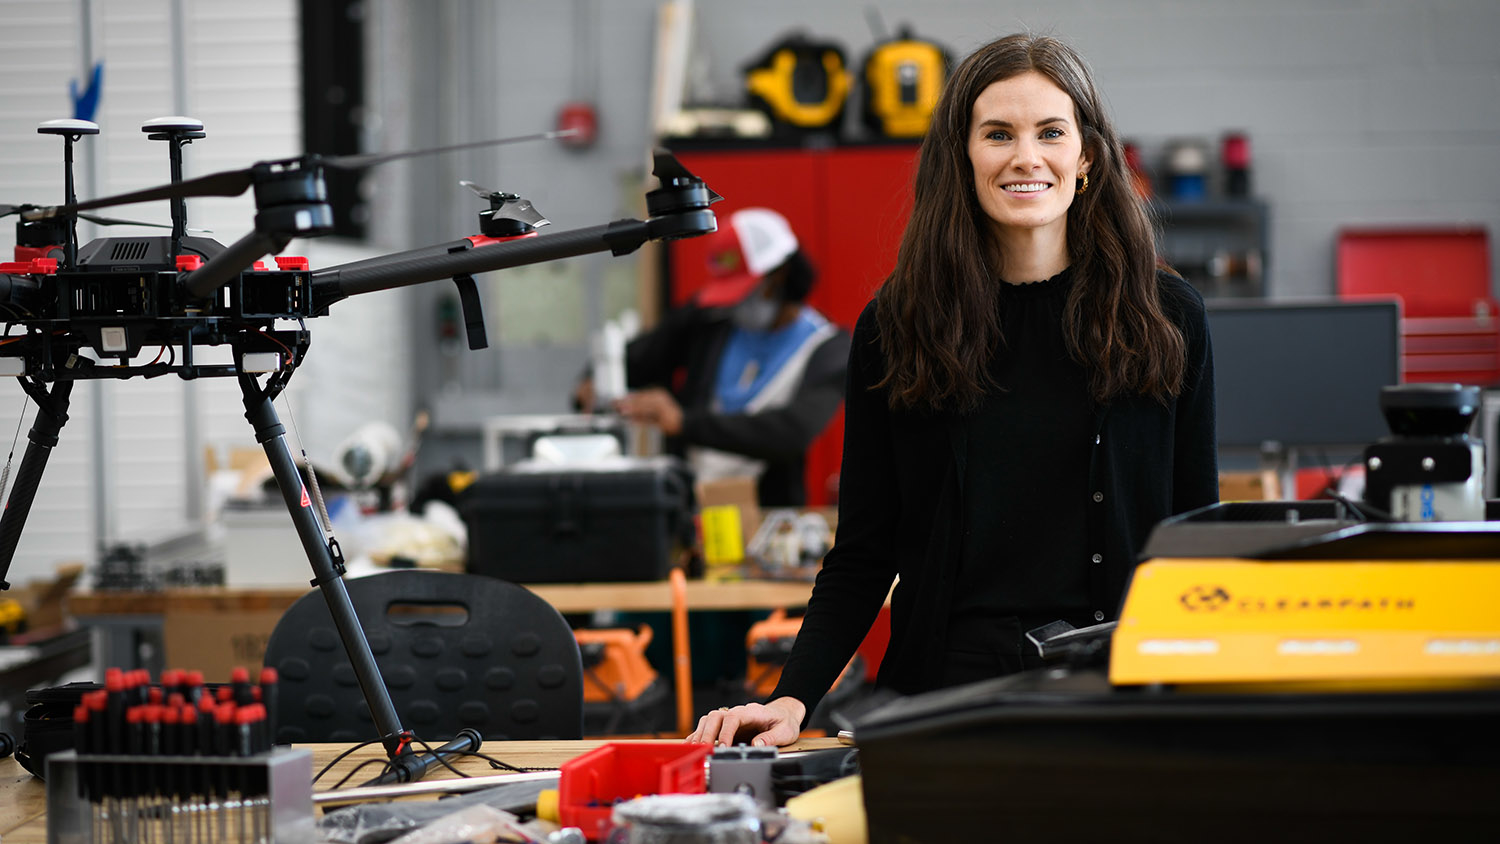 Woman with drones and robots.